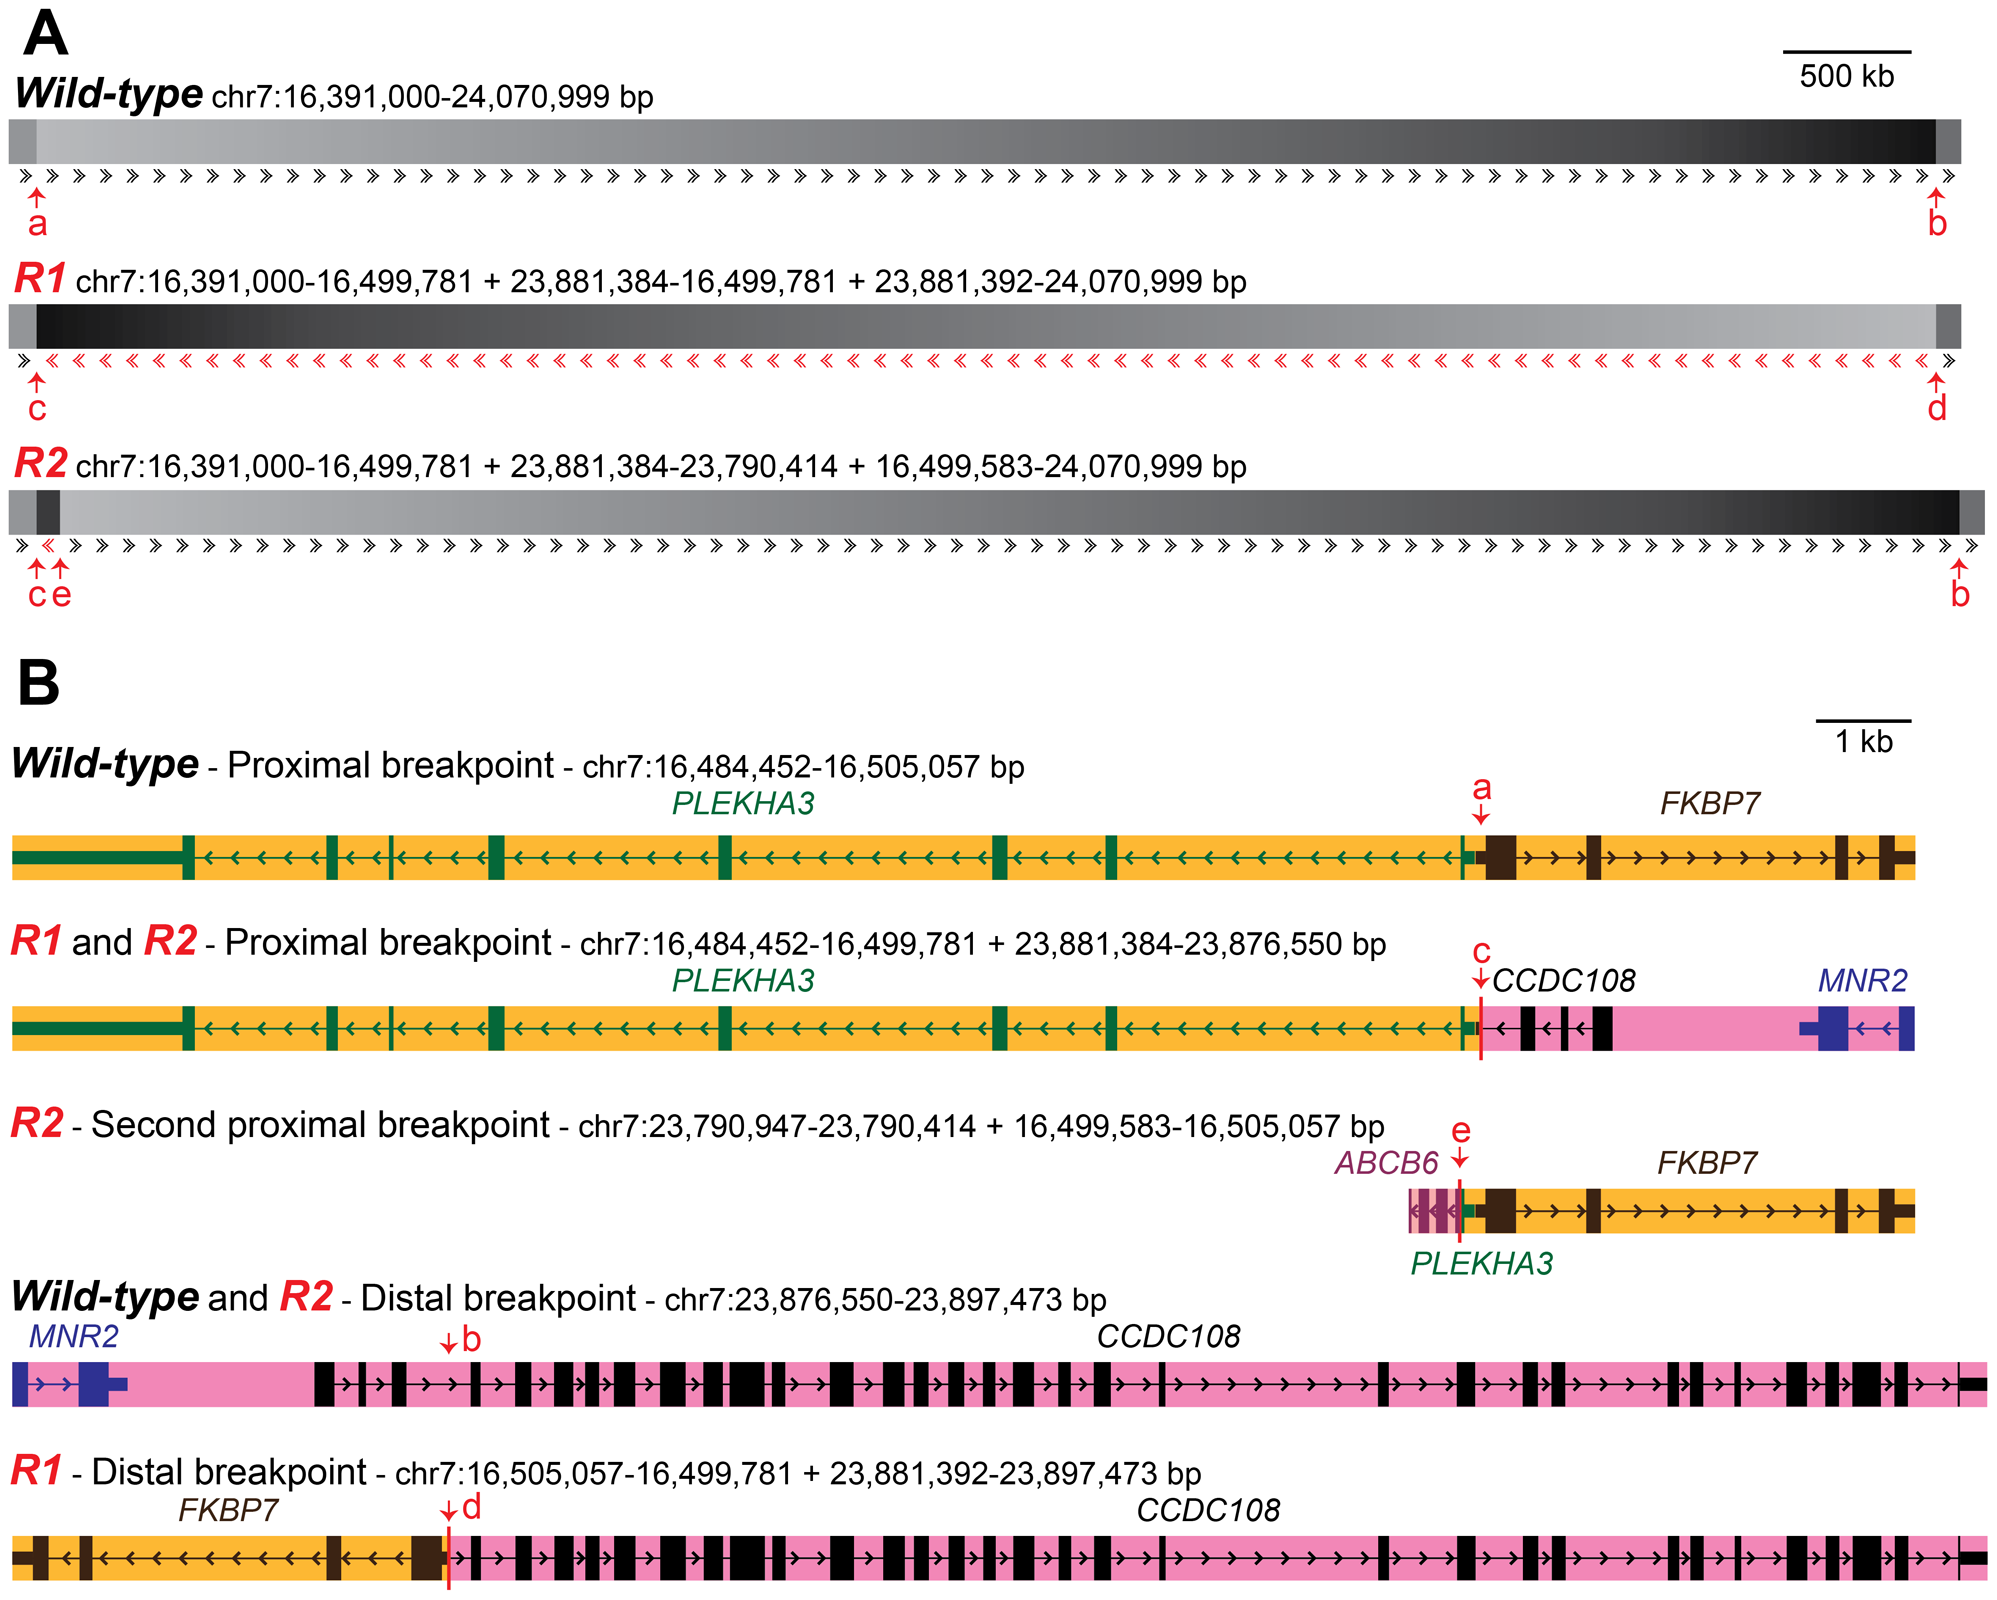 Organization of wild-type and <i>Rose-comb</i> chromosomes and description of inversion and duplication breakpoints.